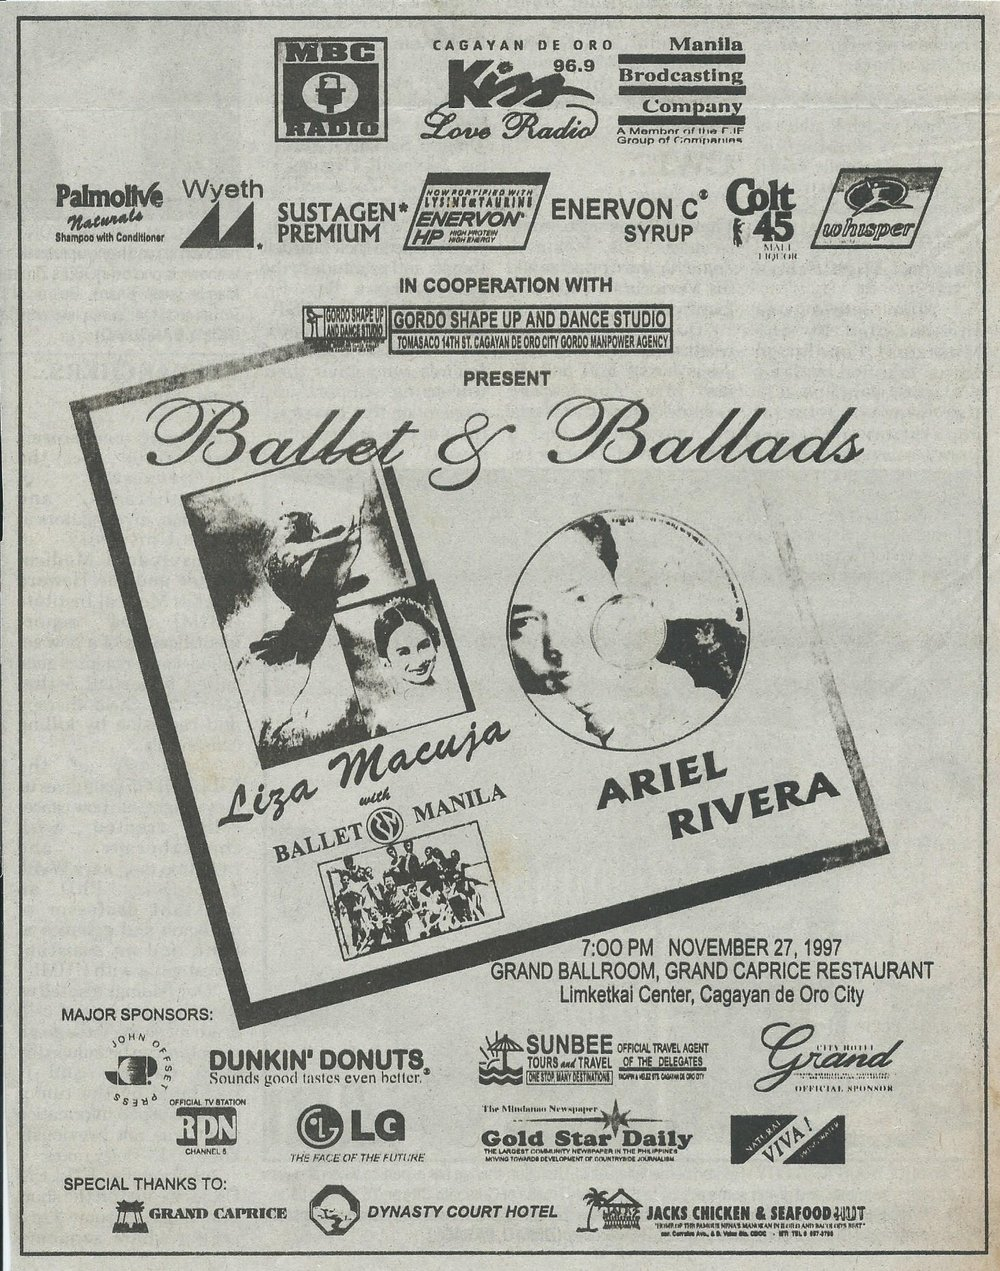 Advertisement for Cagayan de Oro show with Ariel Rivera, 1997